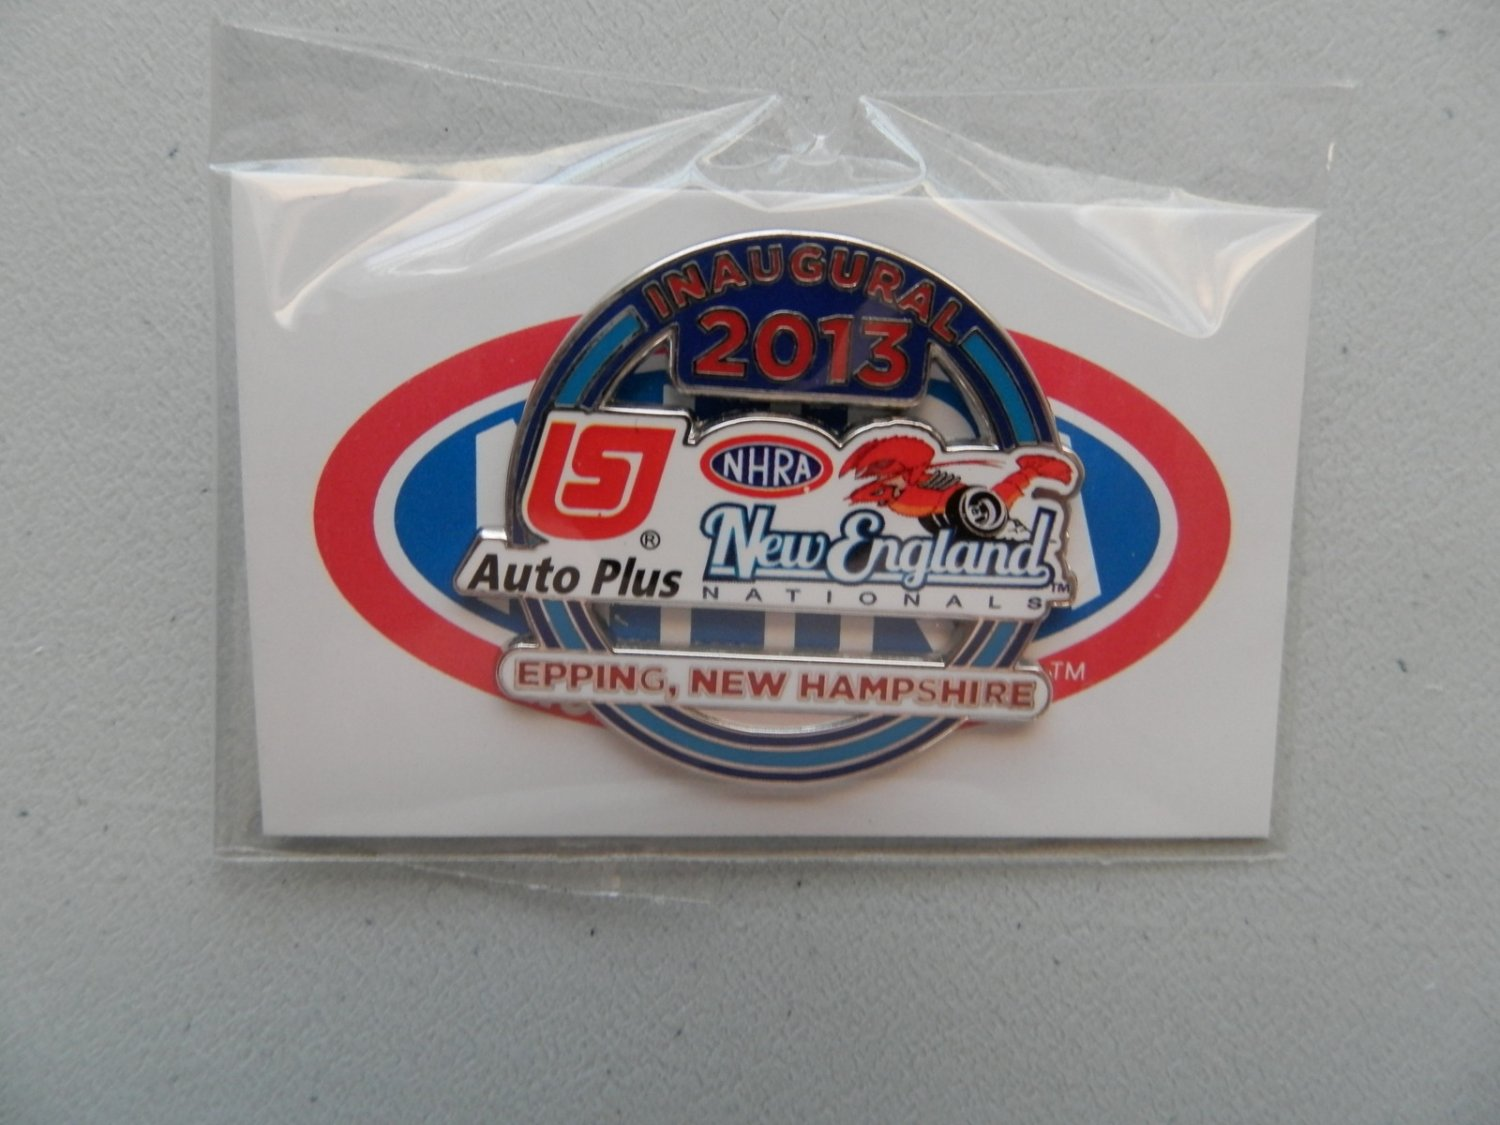 2013 NHRA Event Pin Epping (version #1)